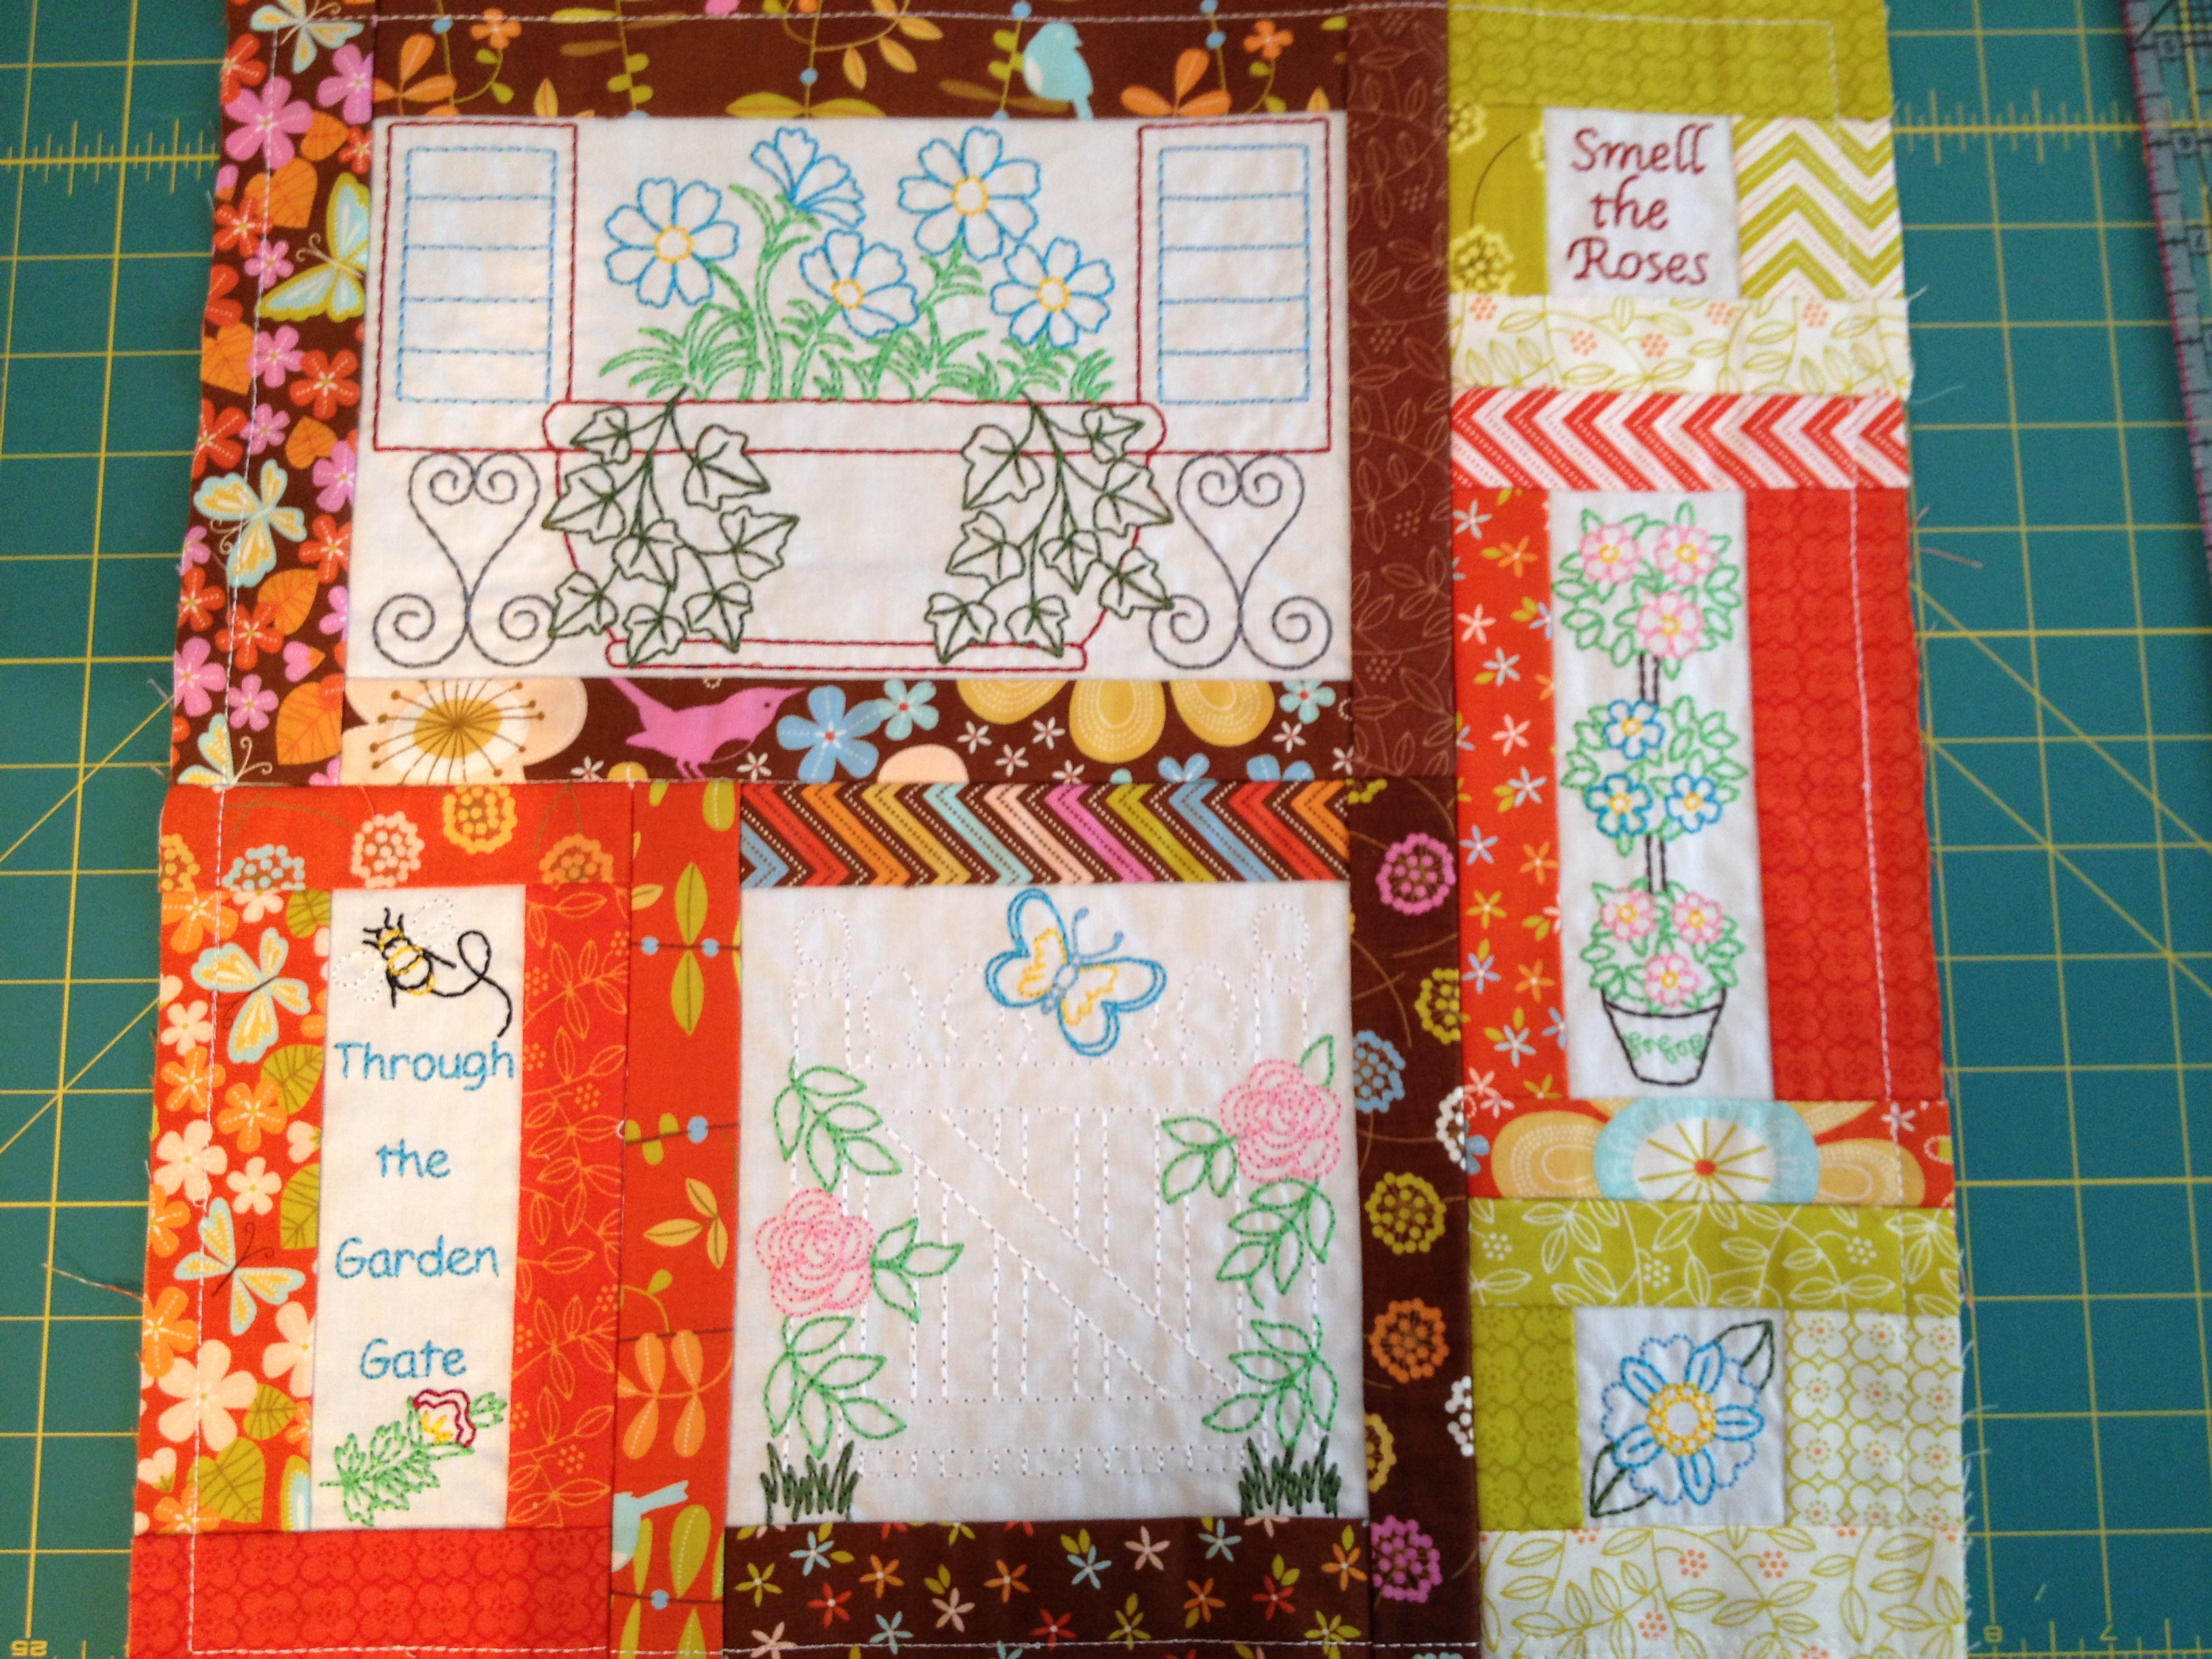 Prayer Garden Quilt by Anita Goodesign